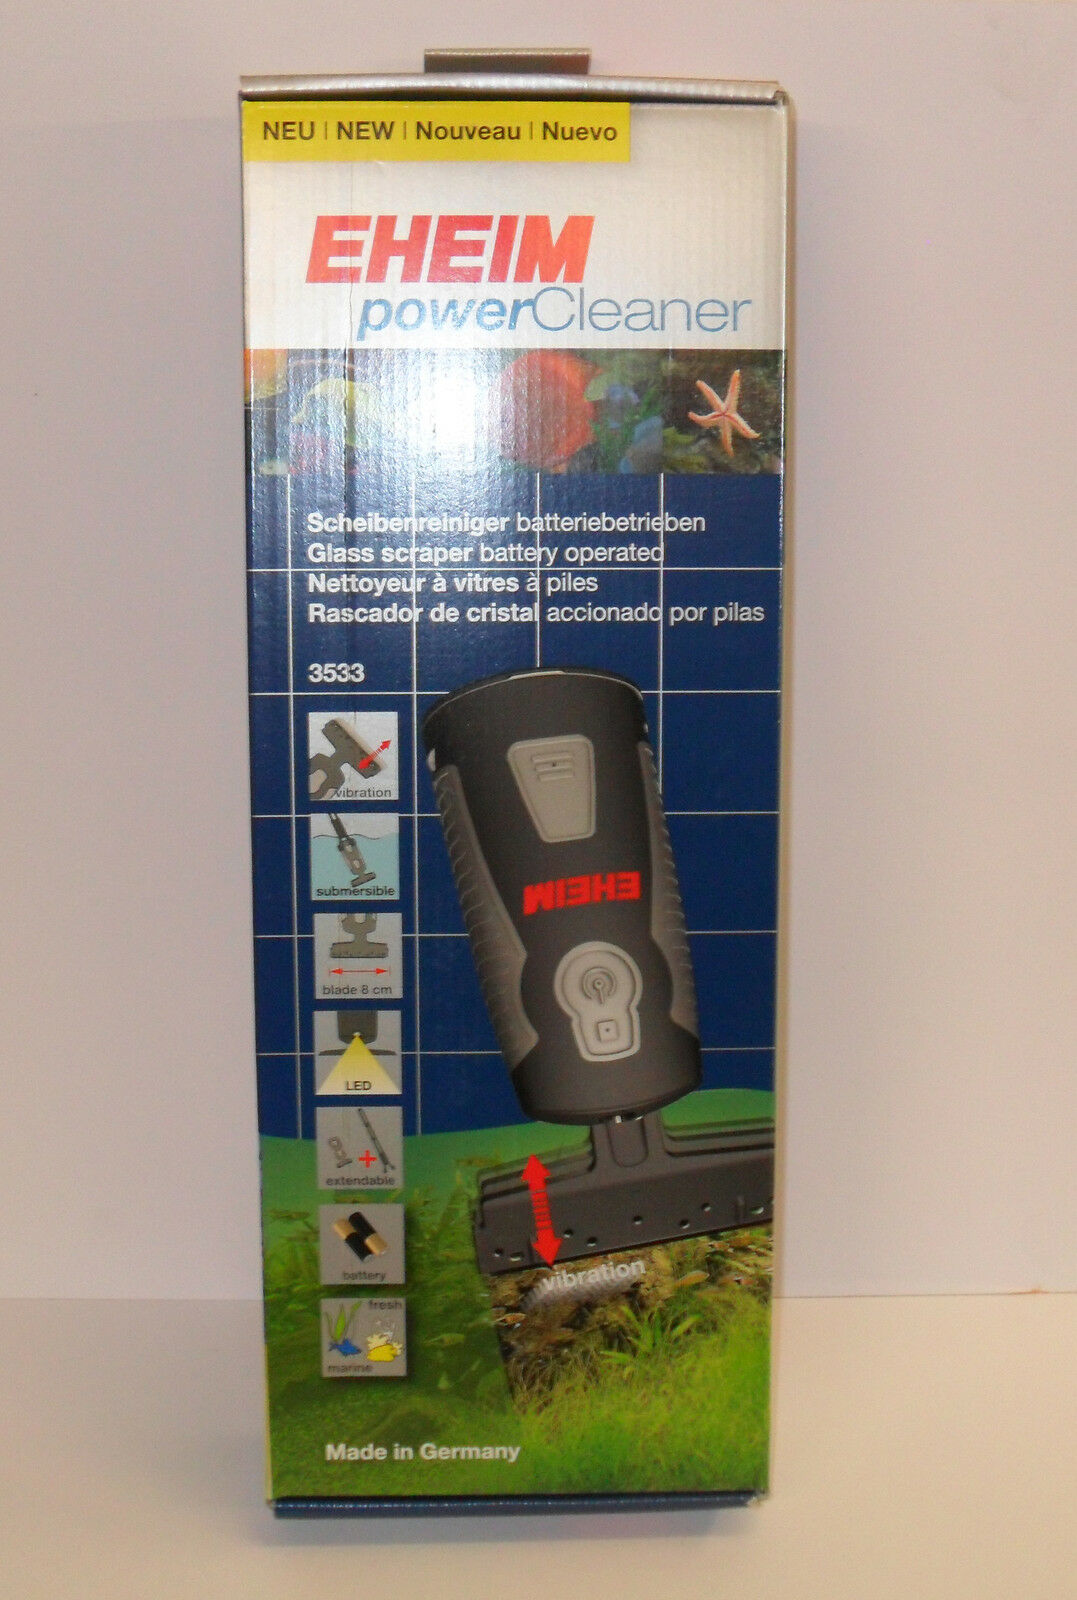 EHEIM POWER CLEANER. 3533000 Battery Powered Glass Scraper for Aquariums